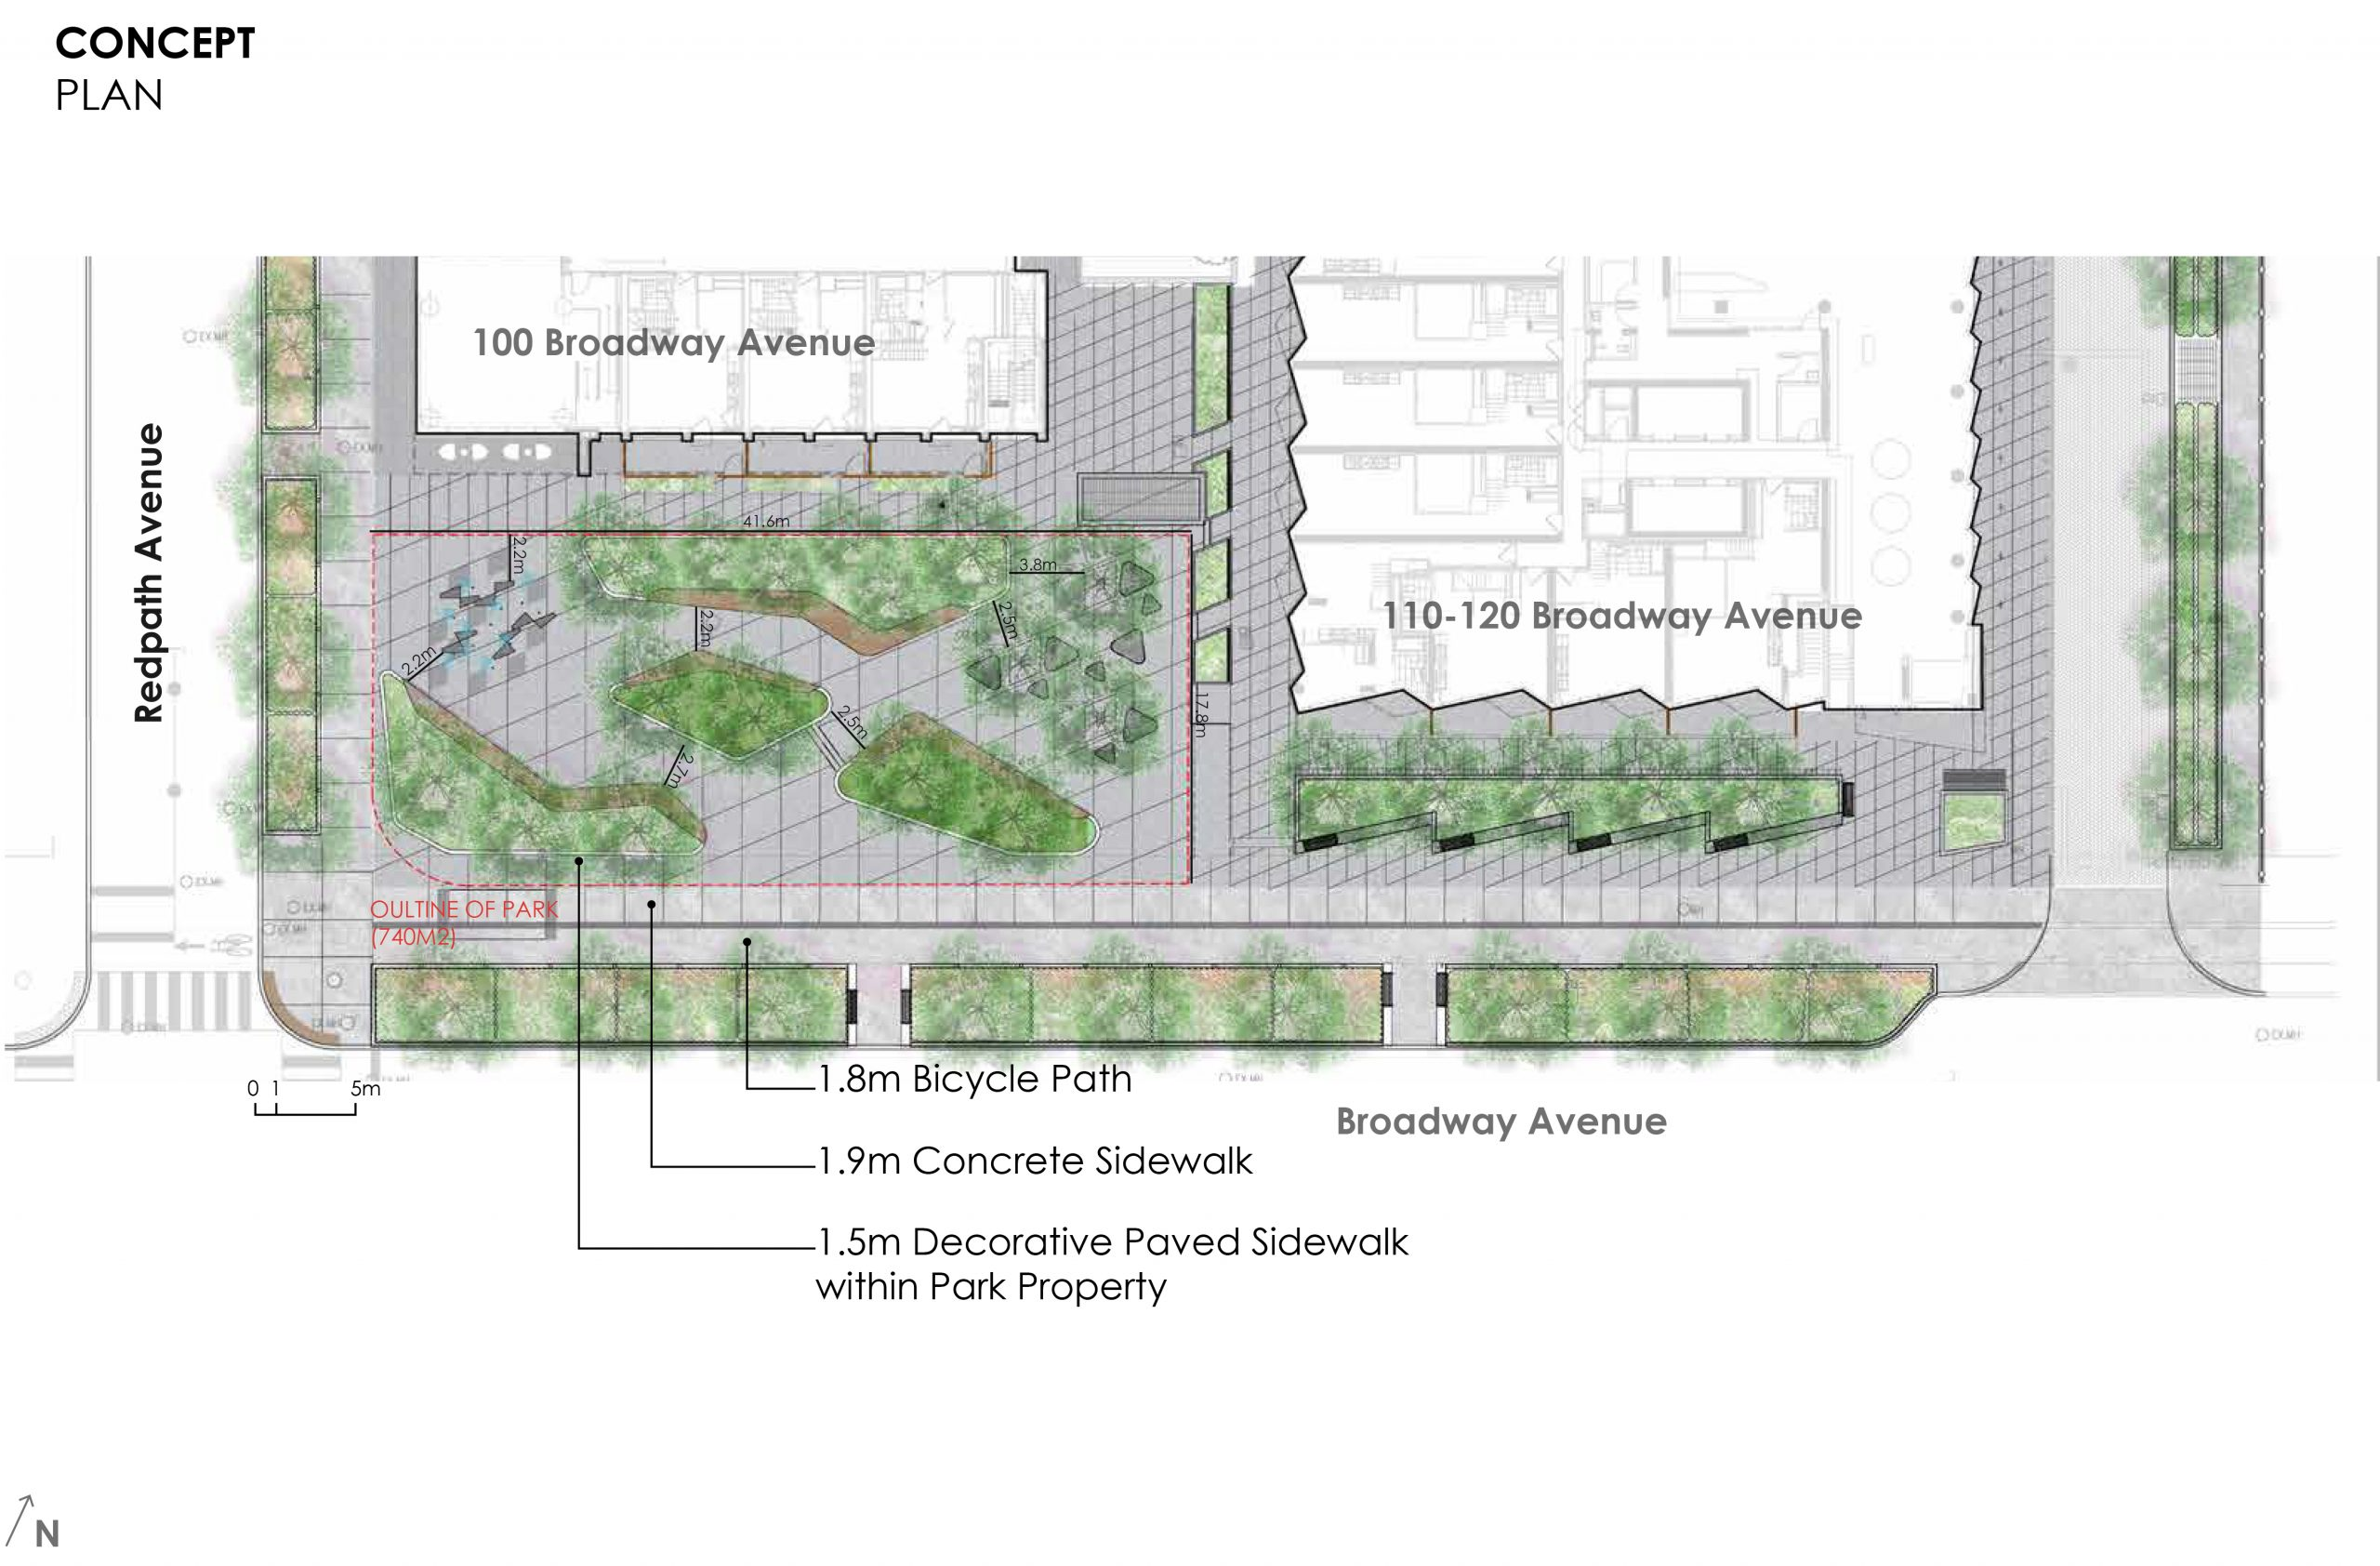 An image of the proposed concept plan for the new park at 100 Broadway Avenue which shows the new surrounding townhouses and apartment buildings in white. A red line shows the outline of the park within the new development site. The long side of this rectangular park will run parallel to a concrete sidewalk and bicycle path along Broadway Avenue.